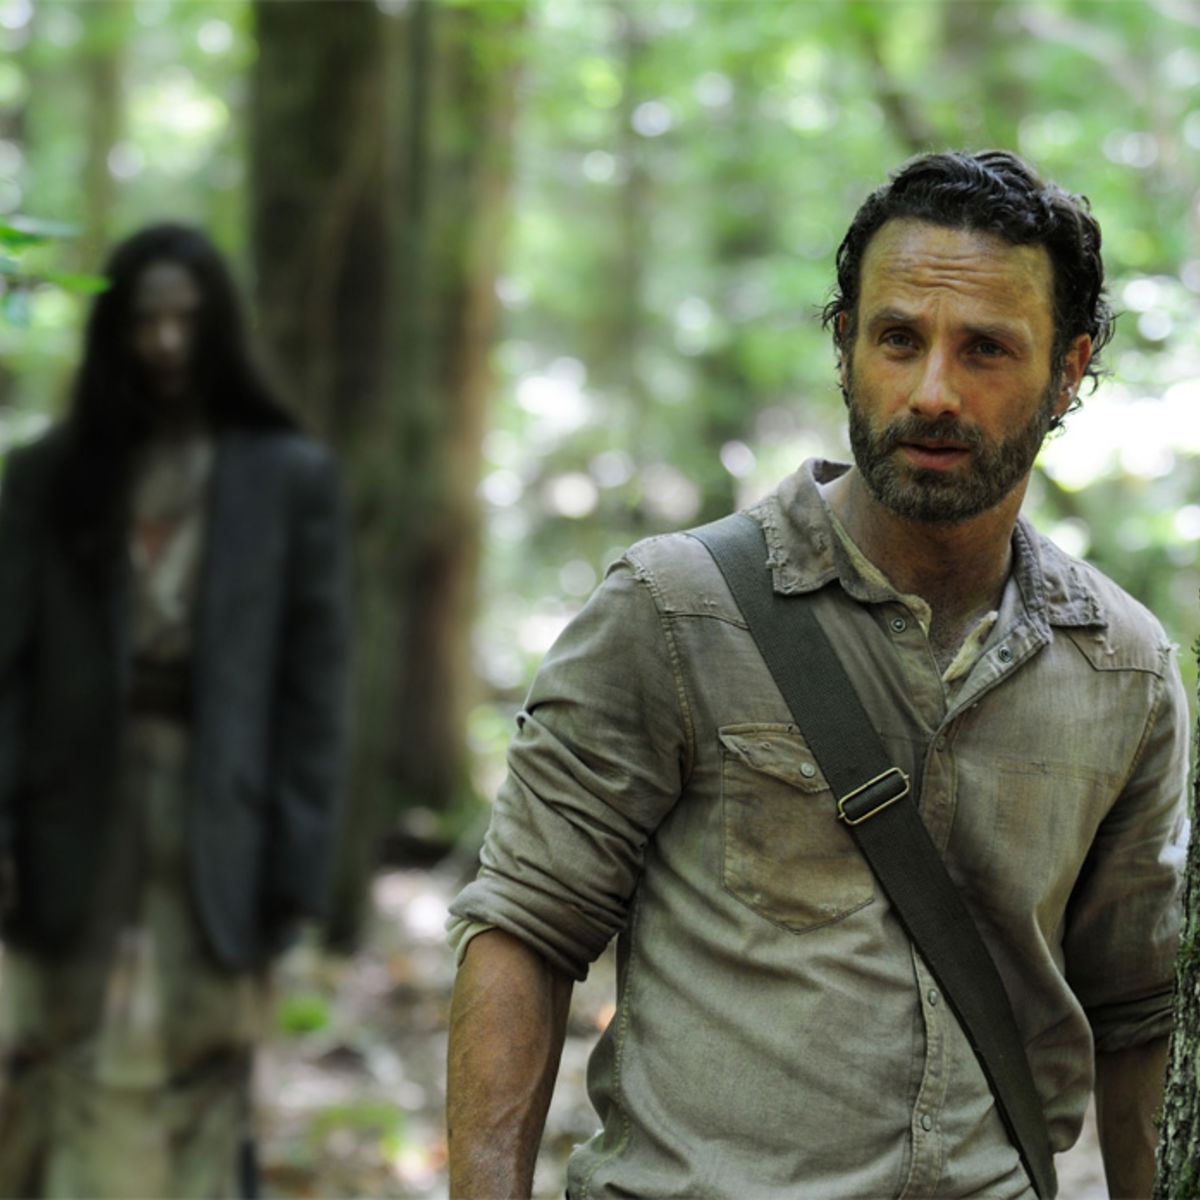 Rick-Grimes-Quarta-Temporada-de-The-Walking-Dead1.jpg